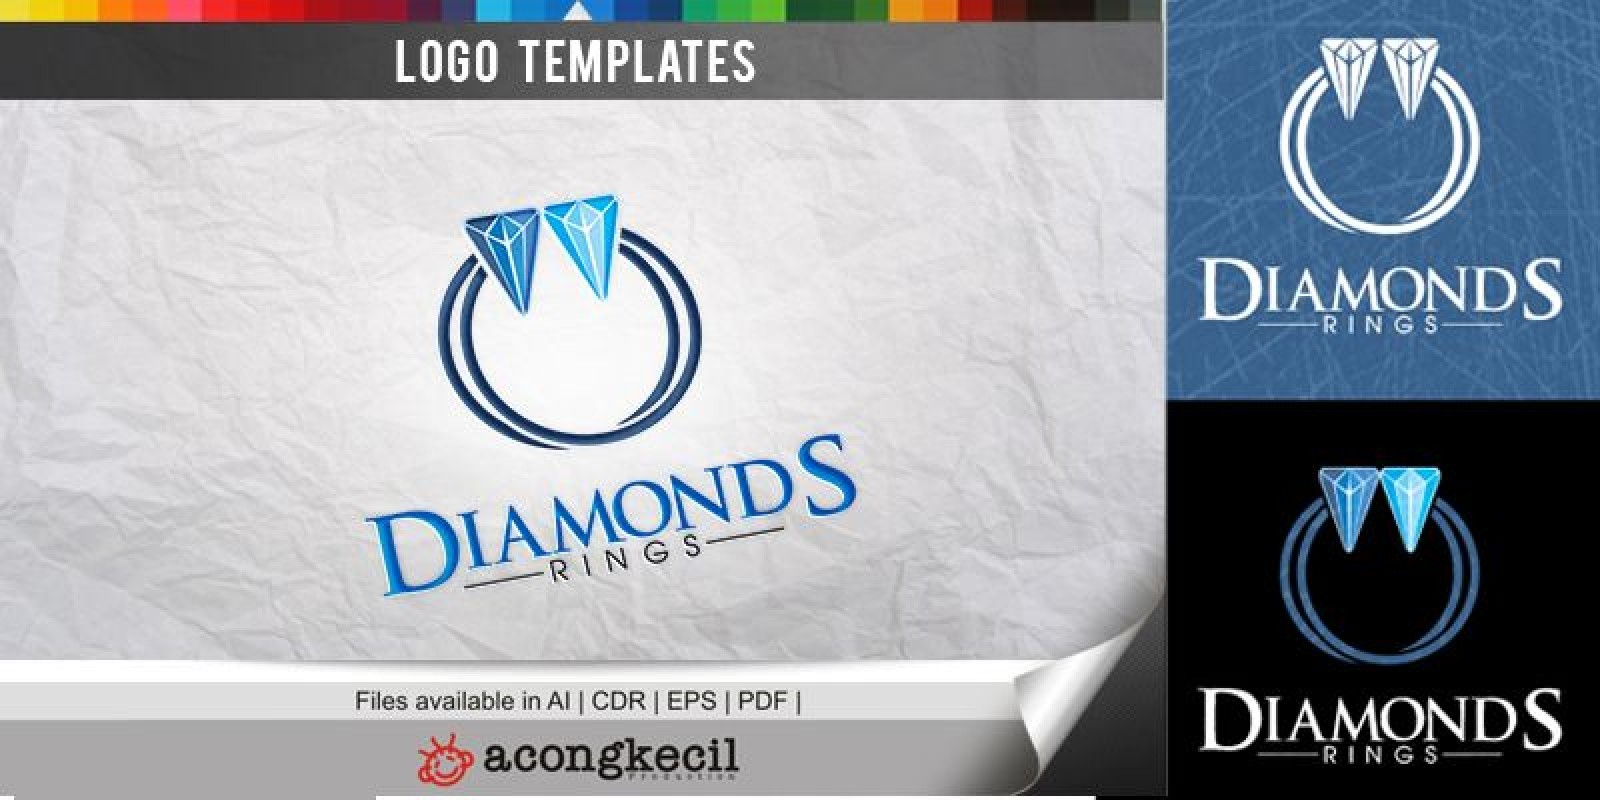 Diamonds Ring - Logo Template